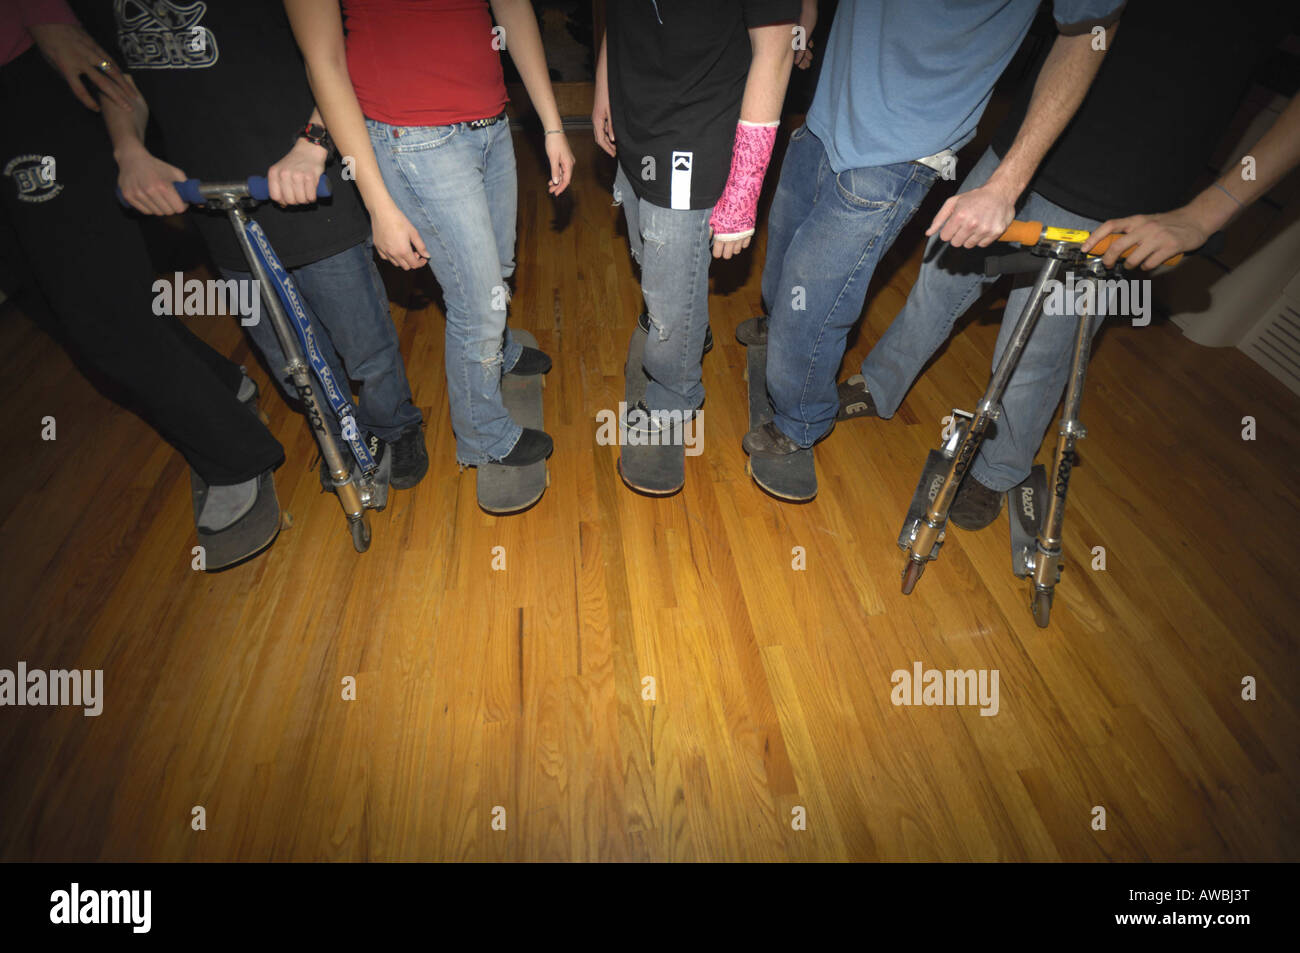 Teenagers standing on skateboards and skooters indoors Stock Photo